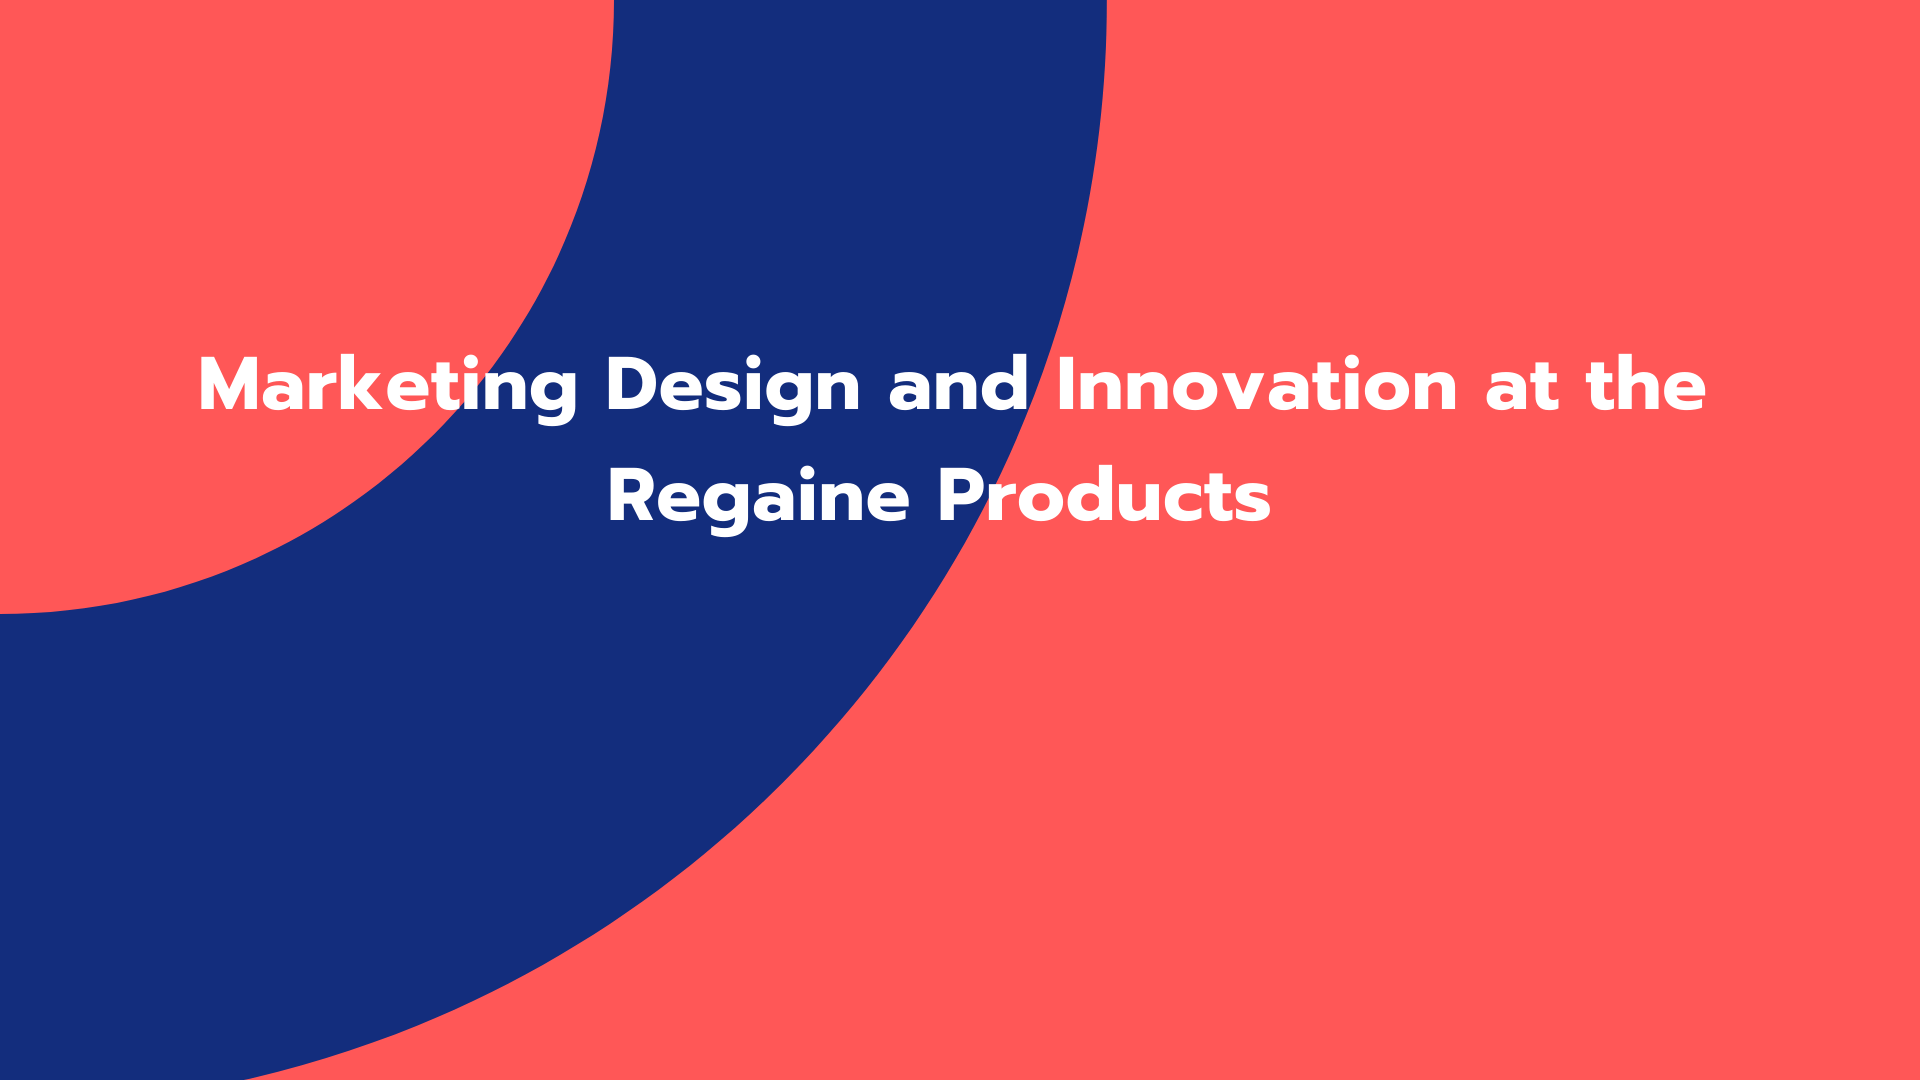 Marketing Design and Innovation at the Regaine Products